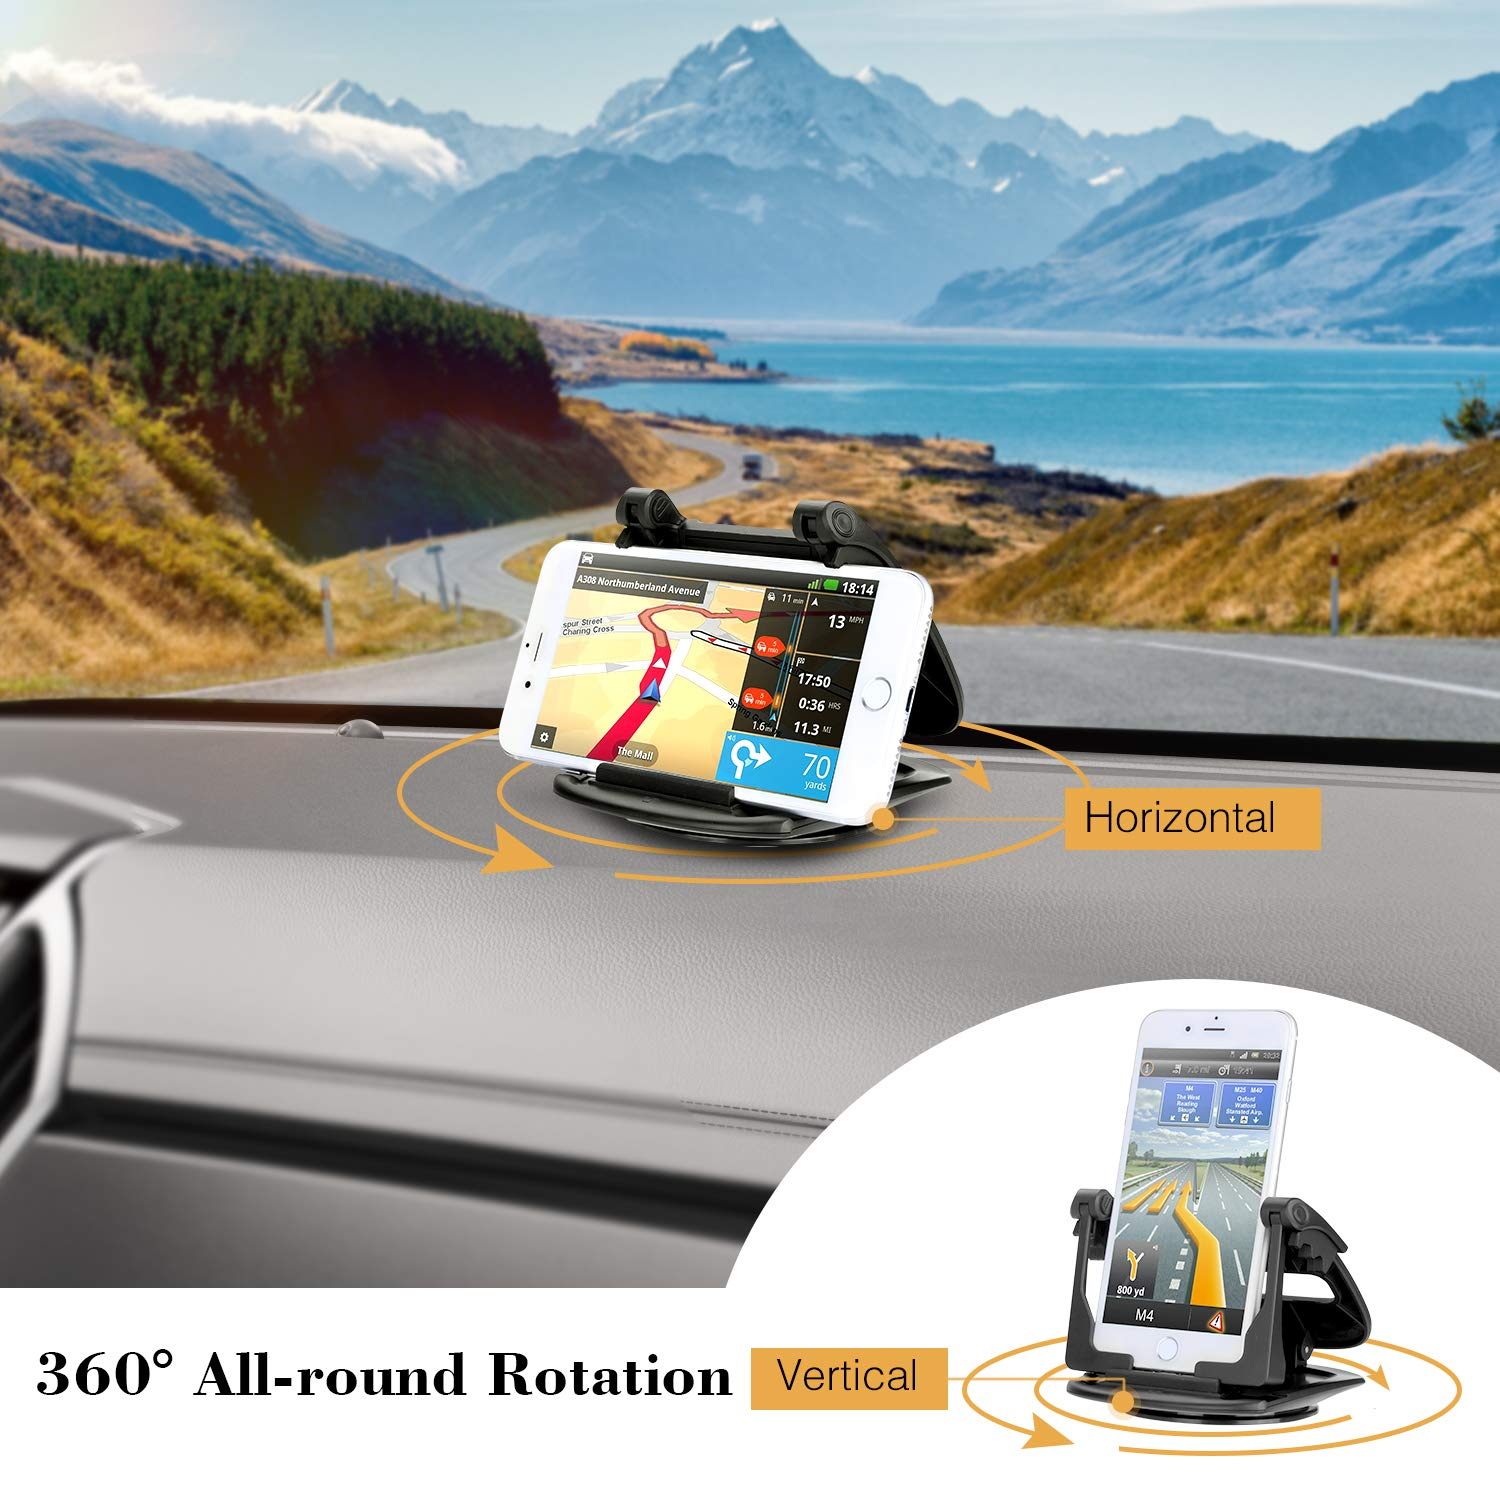 GPS Holder Cradle Dock Mounting in Pickup Truck Compatible Phone X 8 7 Plus Note 8 S9 S8 2018NGJZJ FITFORT Phone Car Mount Silicone Anti-Slip Dash Pad Mat Cell Phone Holder for Car Dashboard